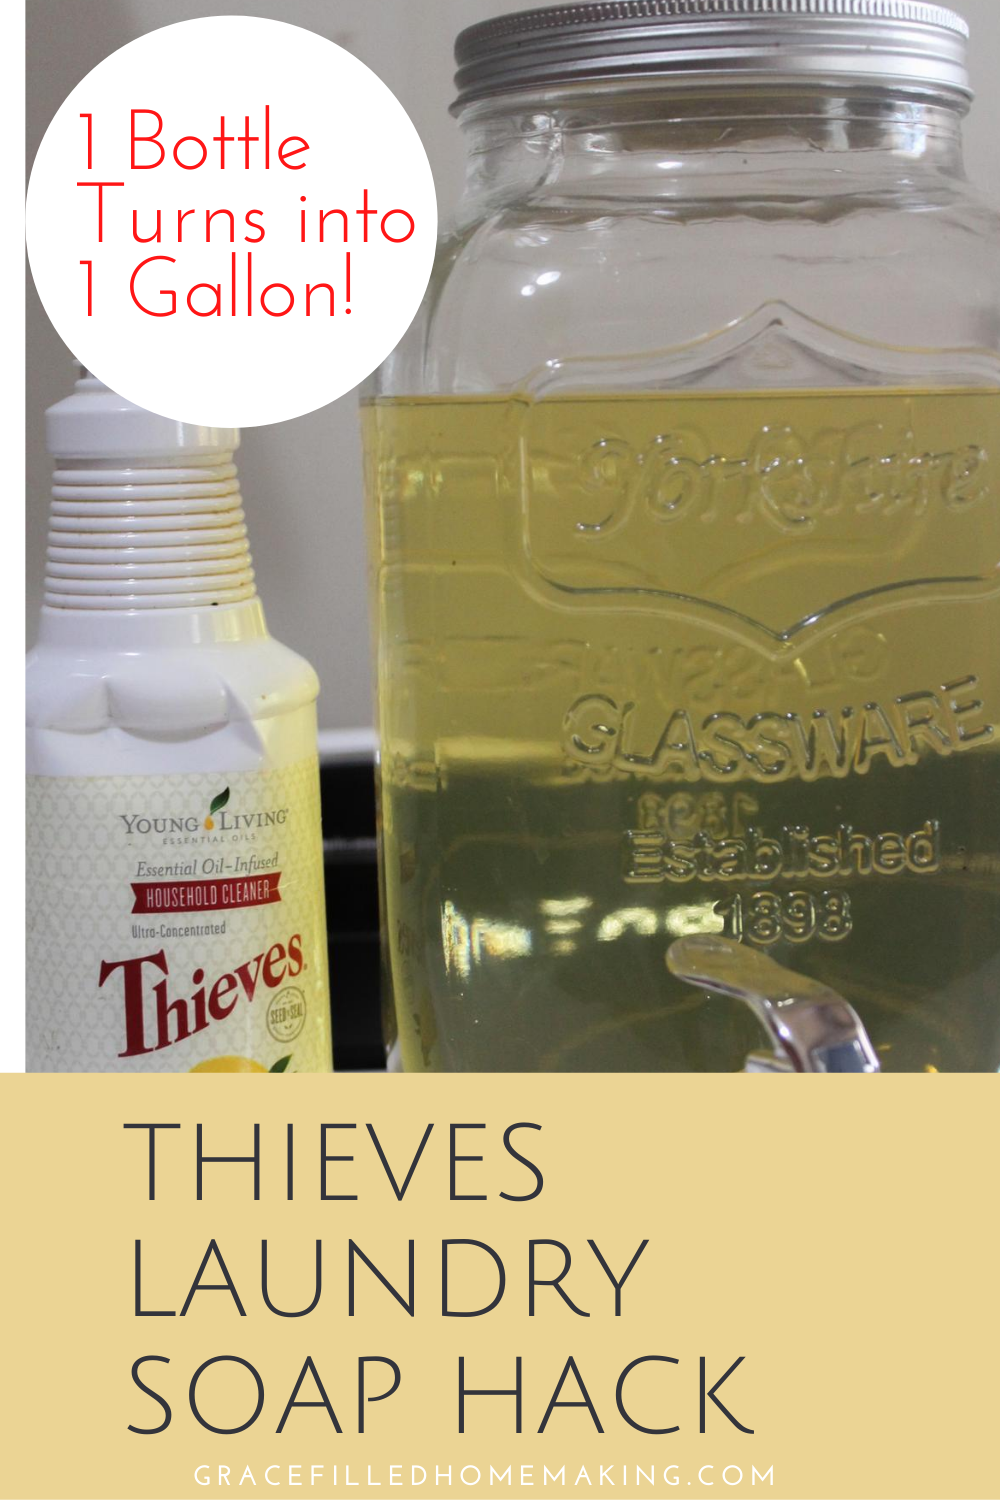 Want non-toxic laundry soap at a super low price? Check out this Thieves Laundry Soap Hack! It takes one bottle and turns it into one gallon!